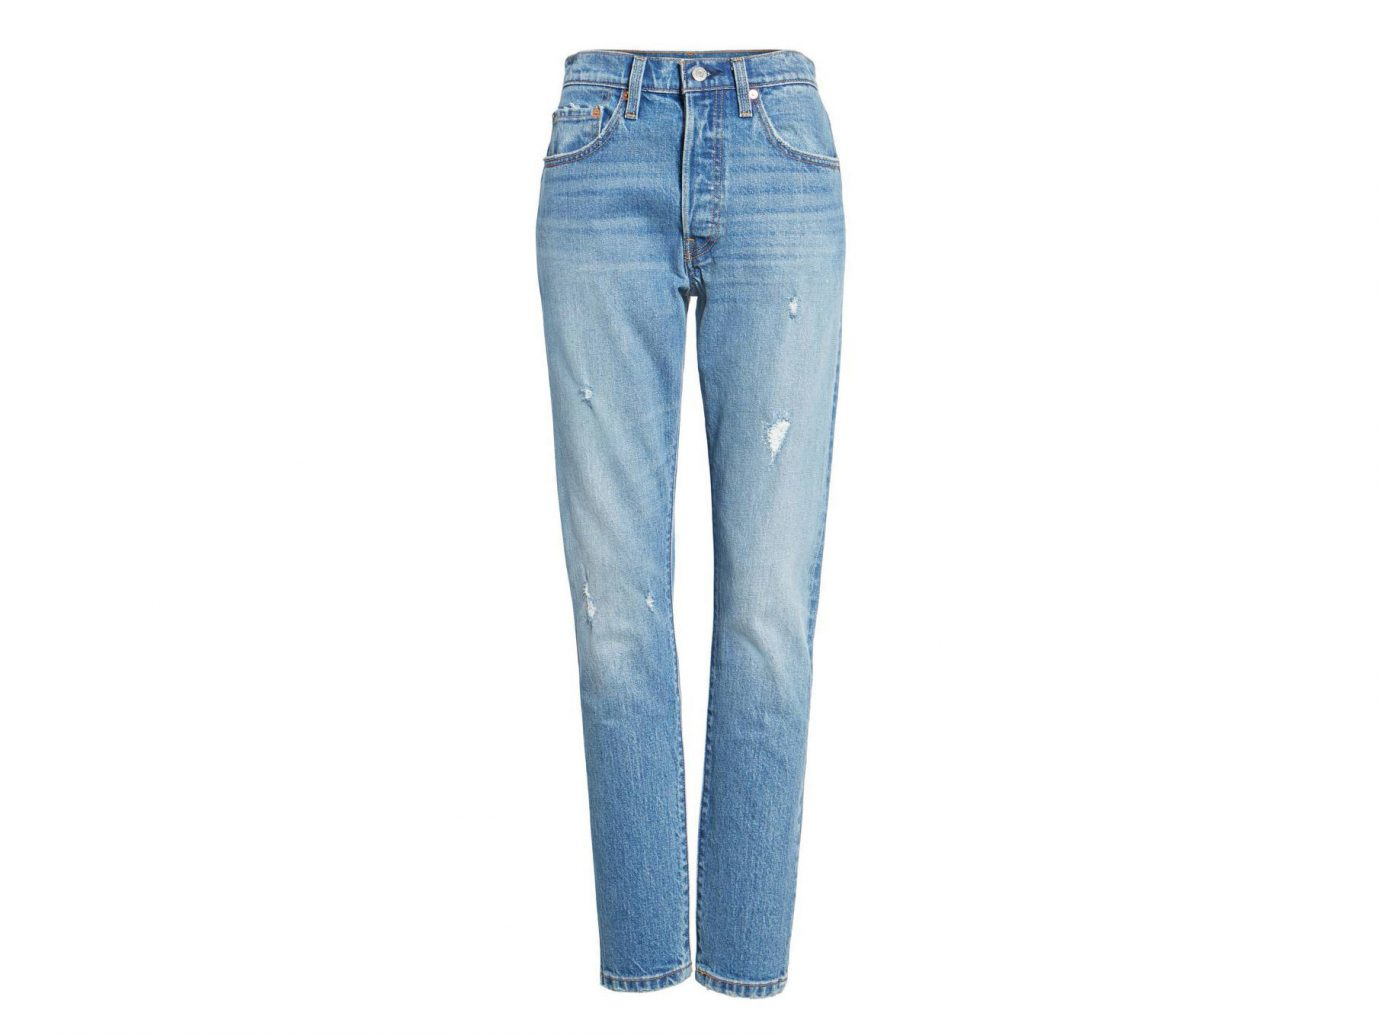 Celebs Style + Design Travel Shop clothing trouser jeans denim pocket trousers waist electric blue blue colored